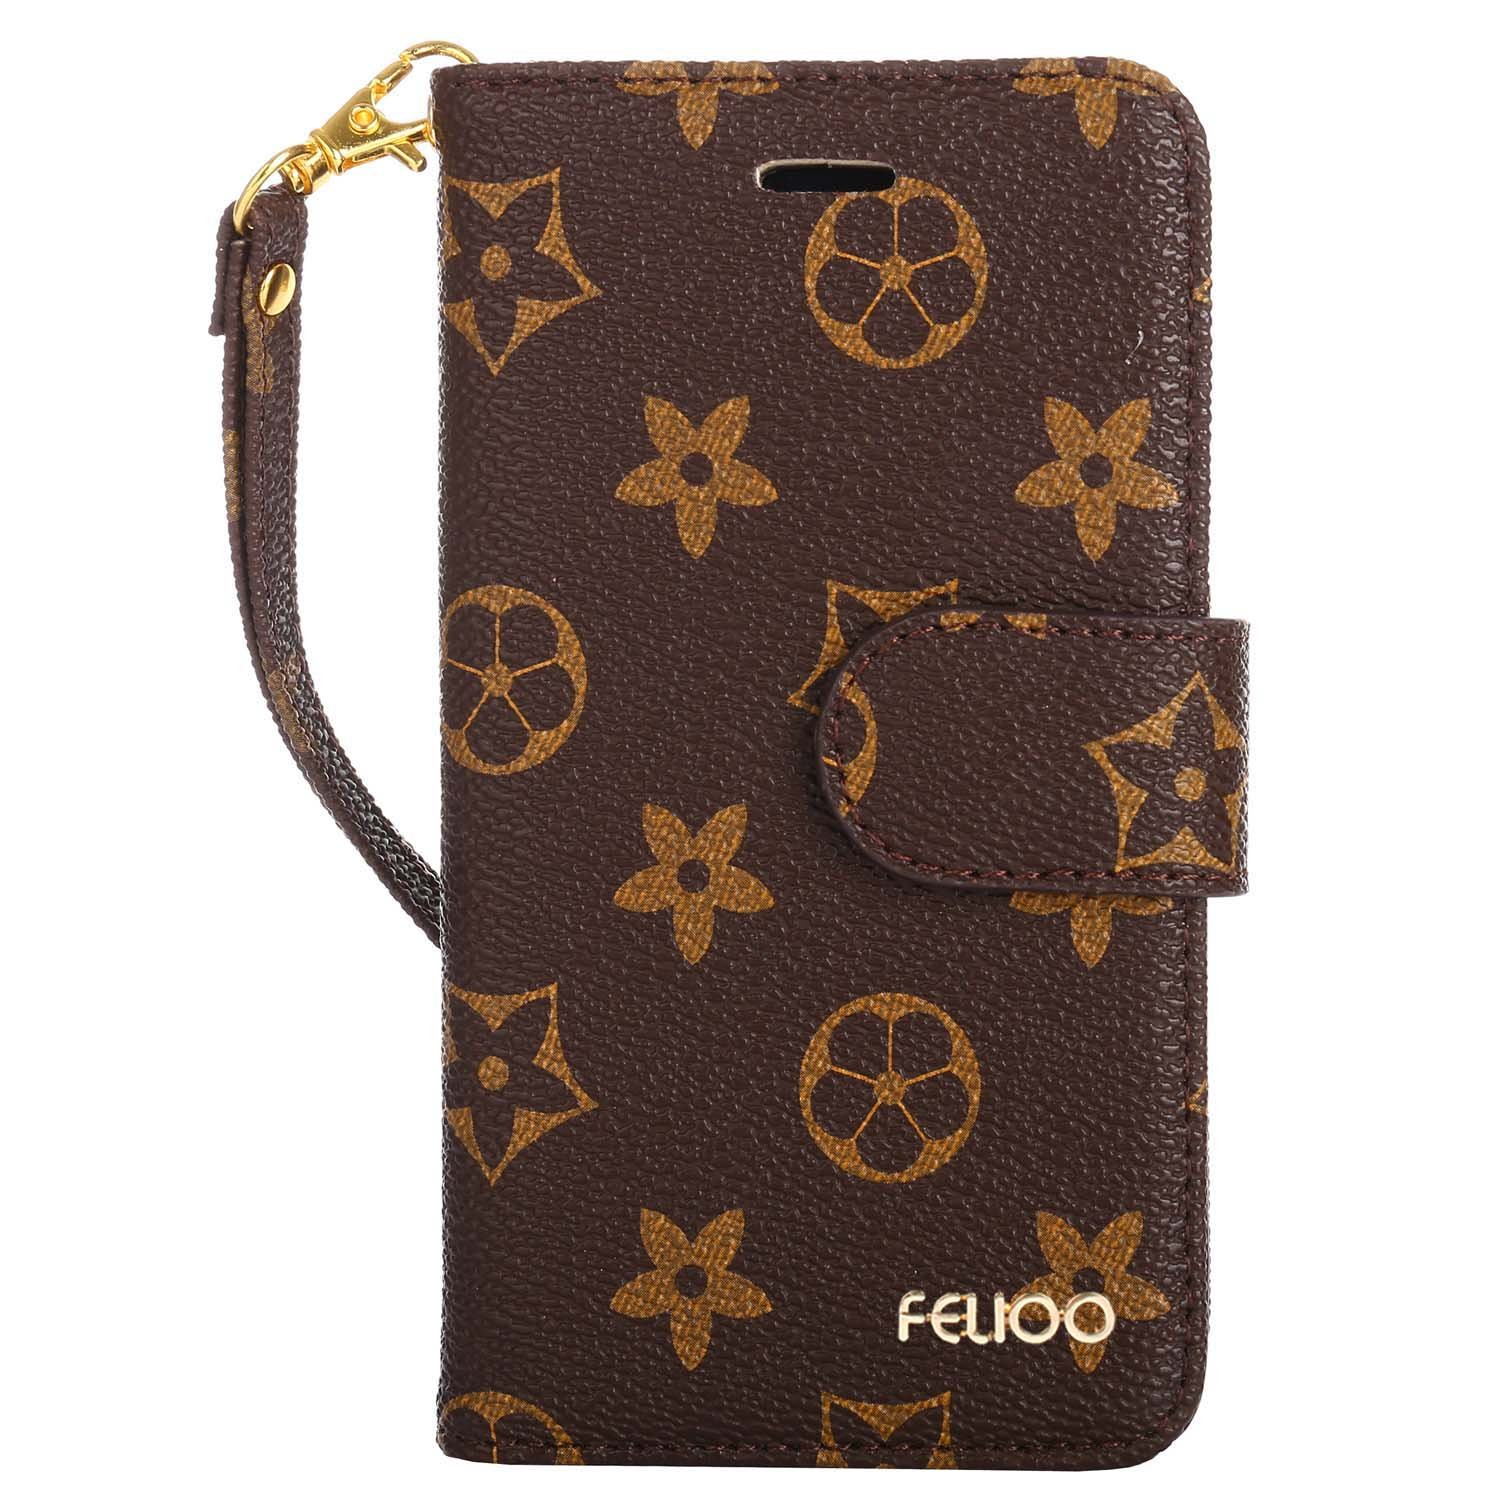 2ff3be5b090 Amazon.com: iPhone Xs MAX Leather Phone Case,GX-LV iPhone Xs MAX ...